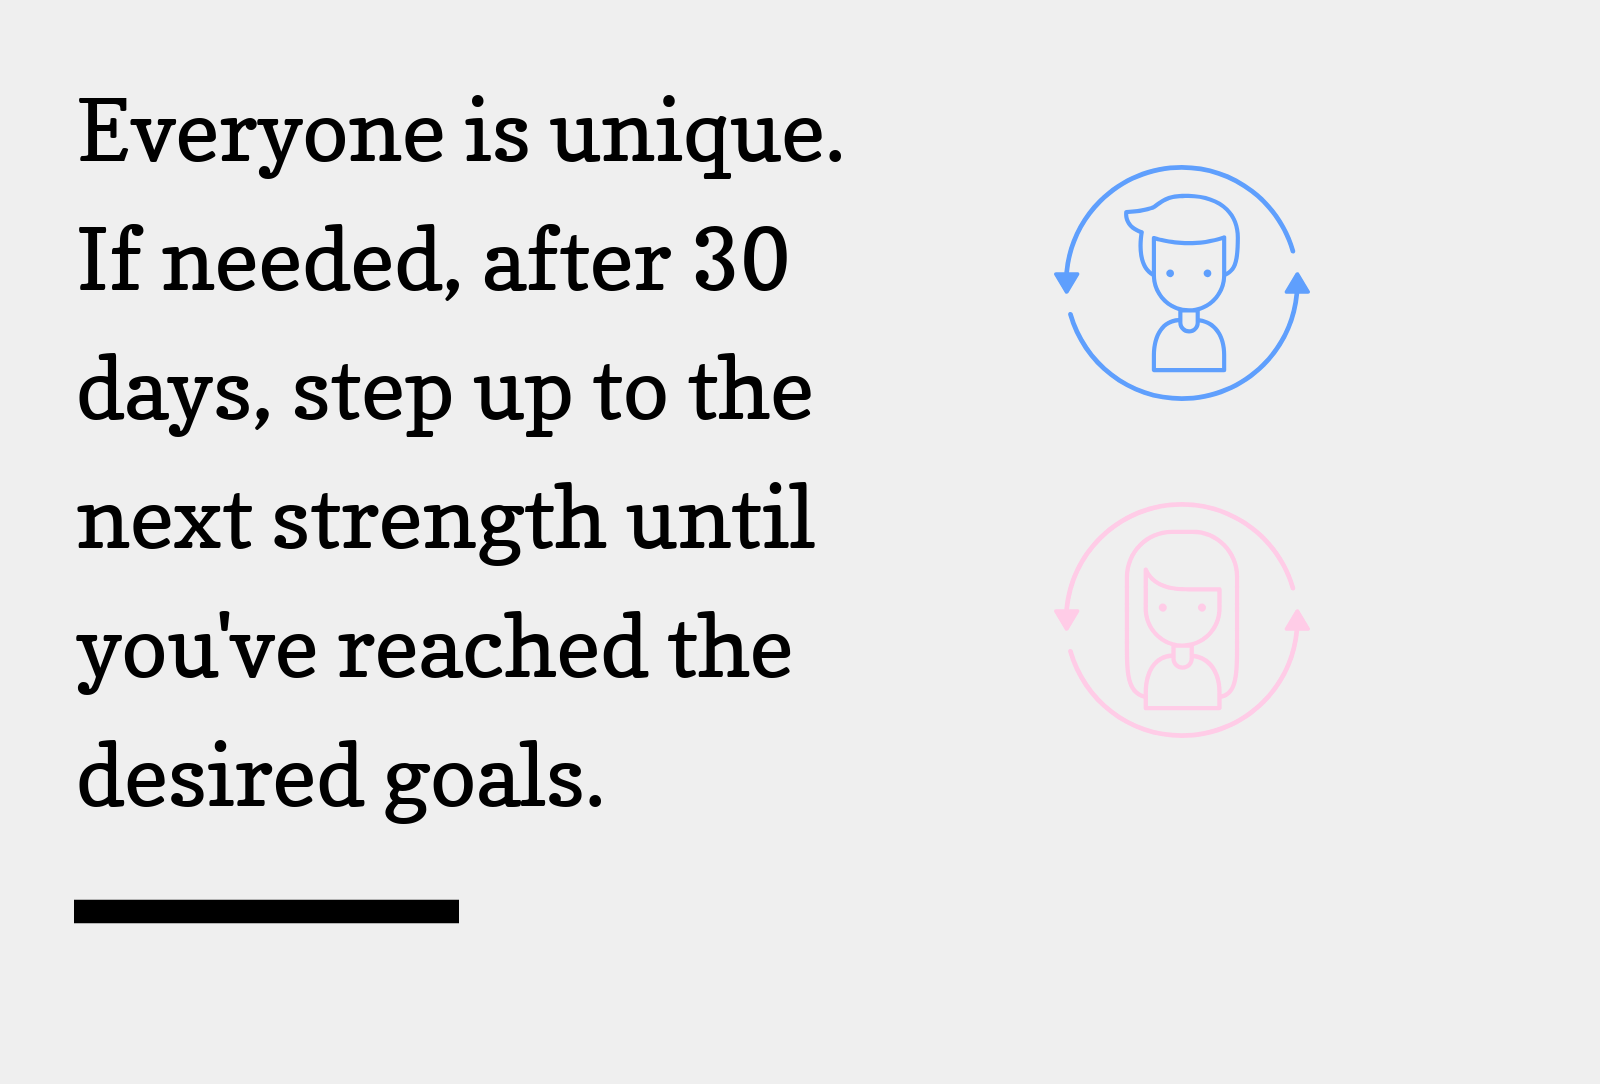 Everyone is unique. If needed, after 30 days, step up to the next strength until you've reached the desired goals.